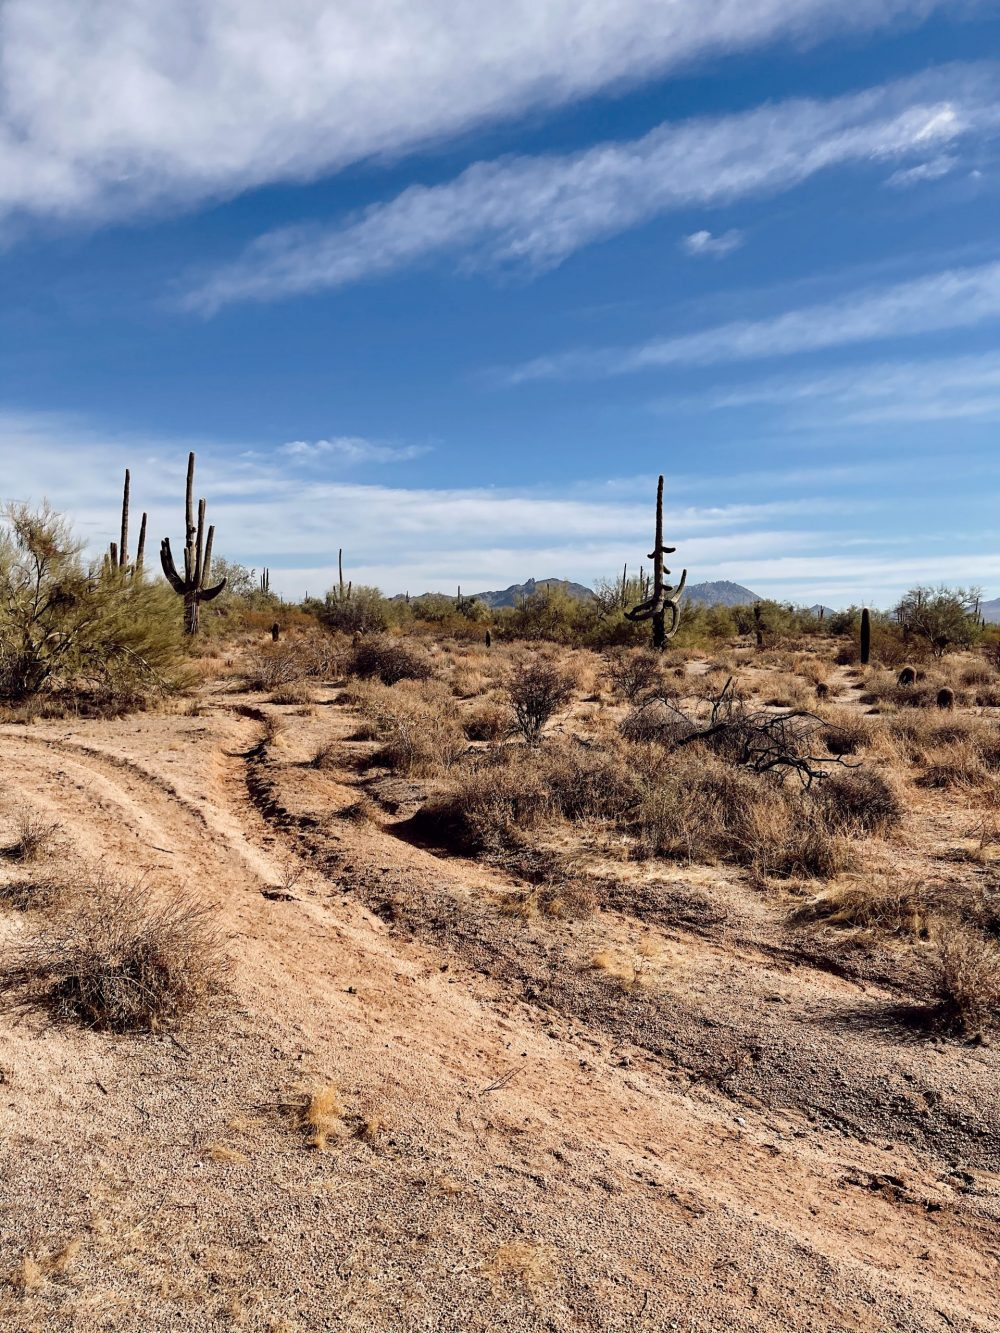 One of the Best Secret Winter Sun Destinations, Scottsdale Arizona. Horseback riding in the desert and family-friendly activities at MacDonald's Ranch. |Guide by popular Florida travel blog, Fresh Mommy Blog: image of saguaro cacti.